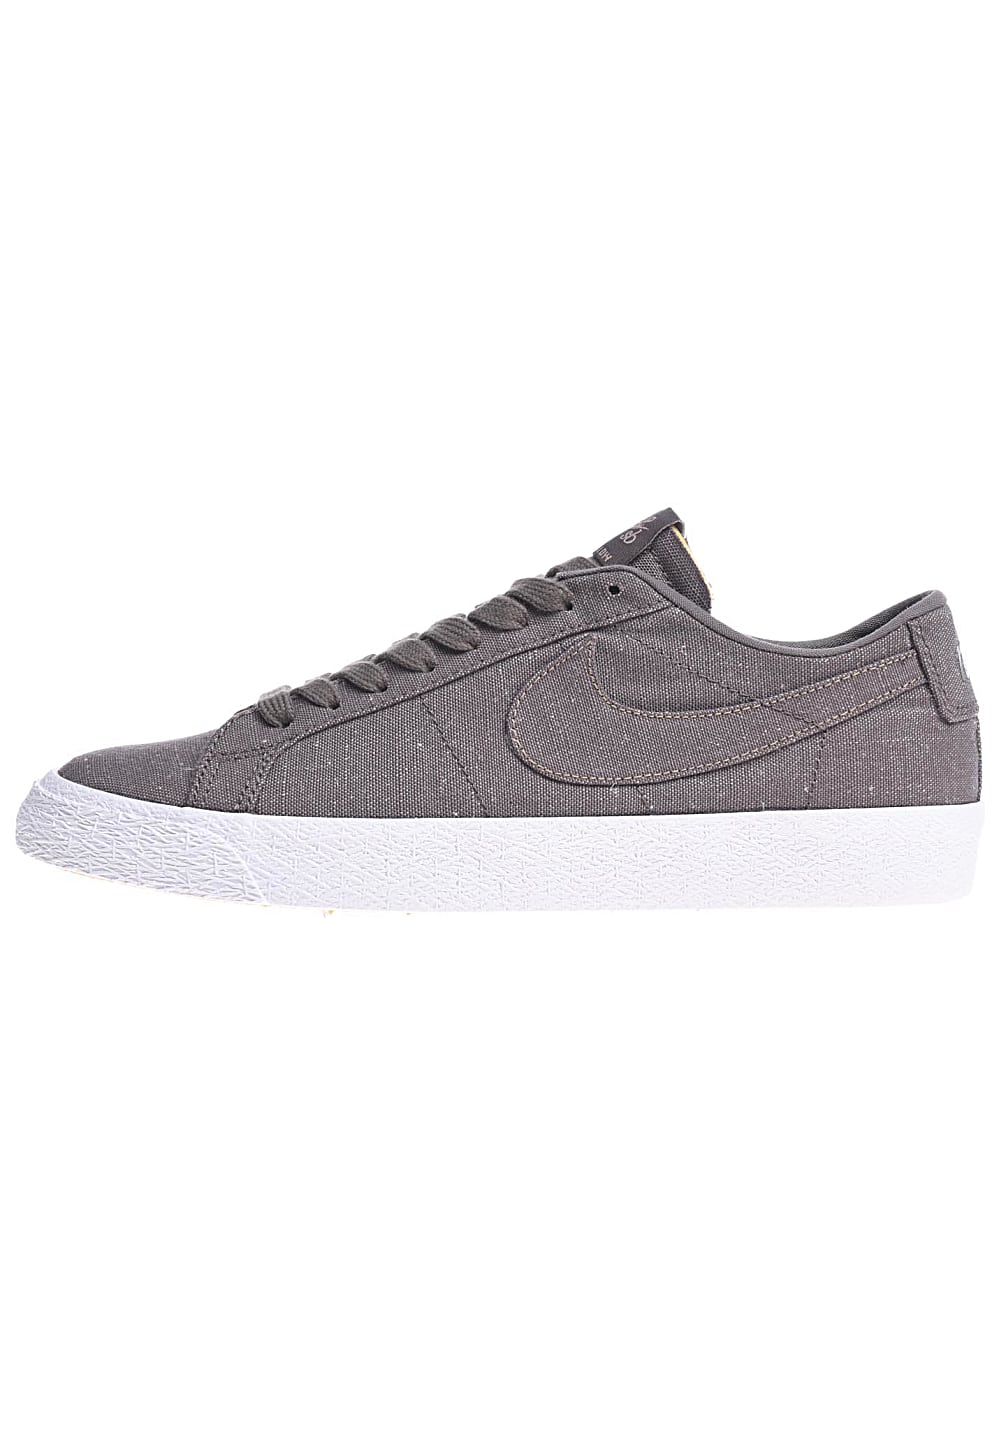 NIKE SB Zoom Blazer Low Canvas Decon Sneakers for Men